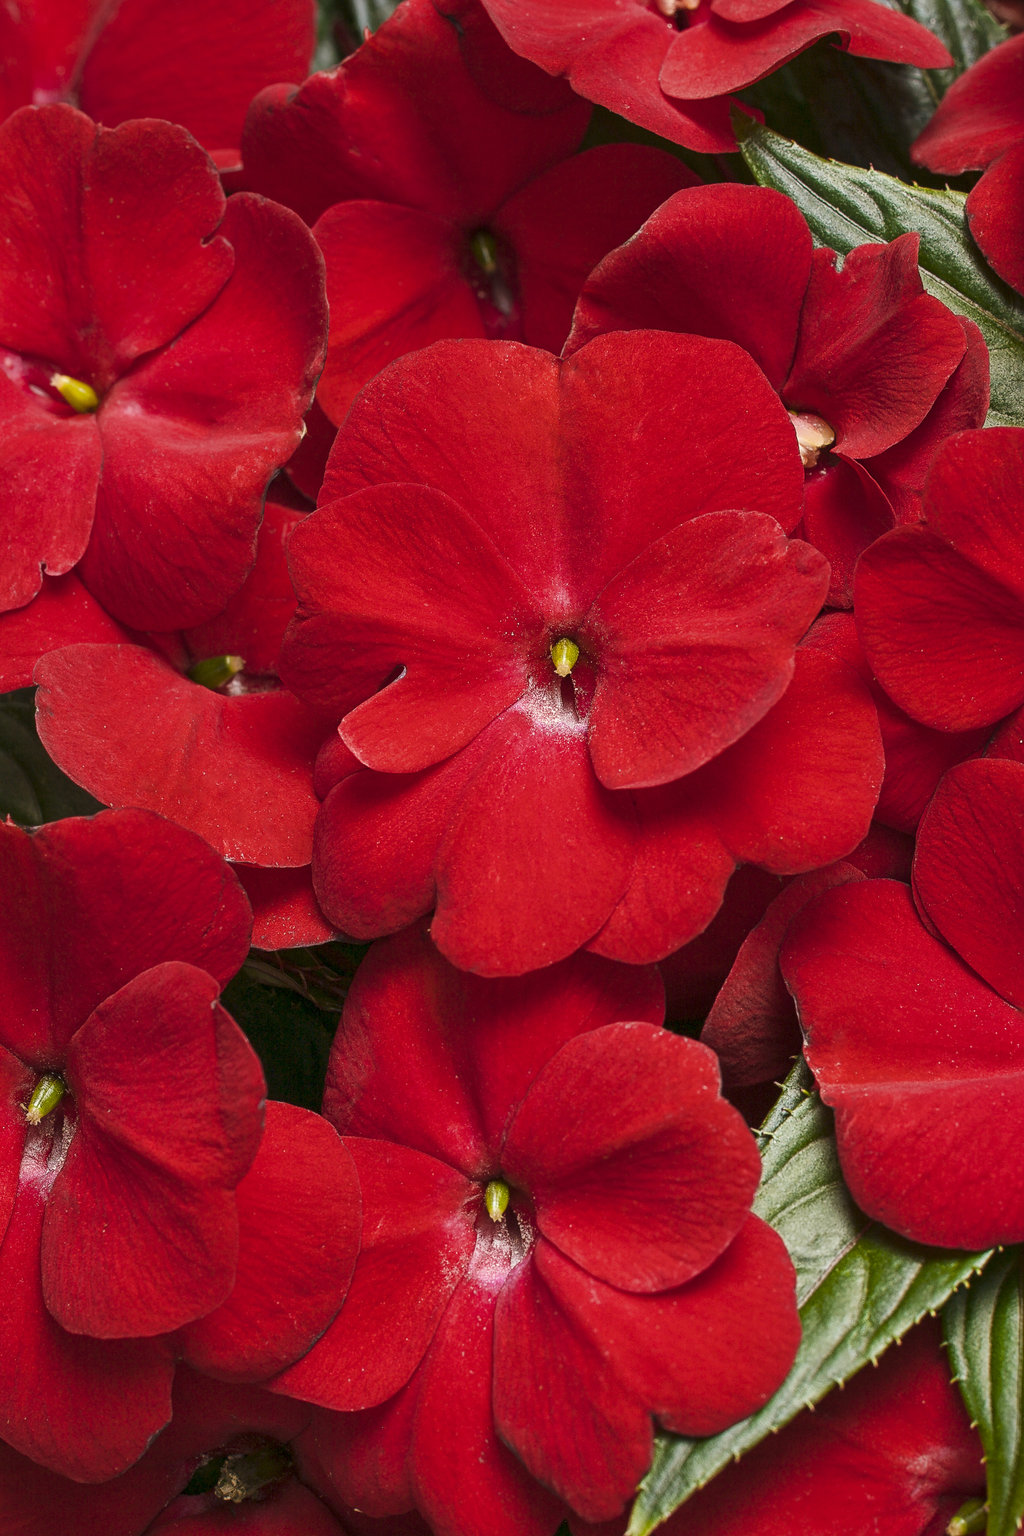 Infinity red new guinea impatiens impatiens hawkeri for New guinea impatiens